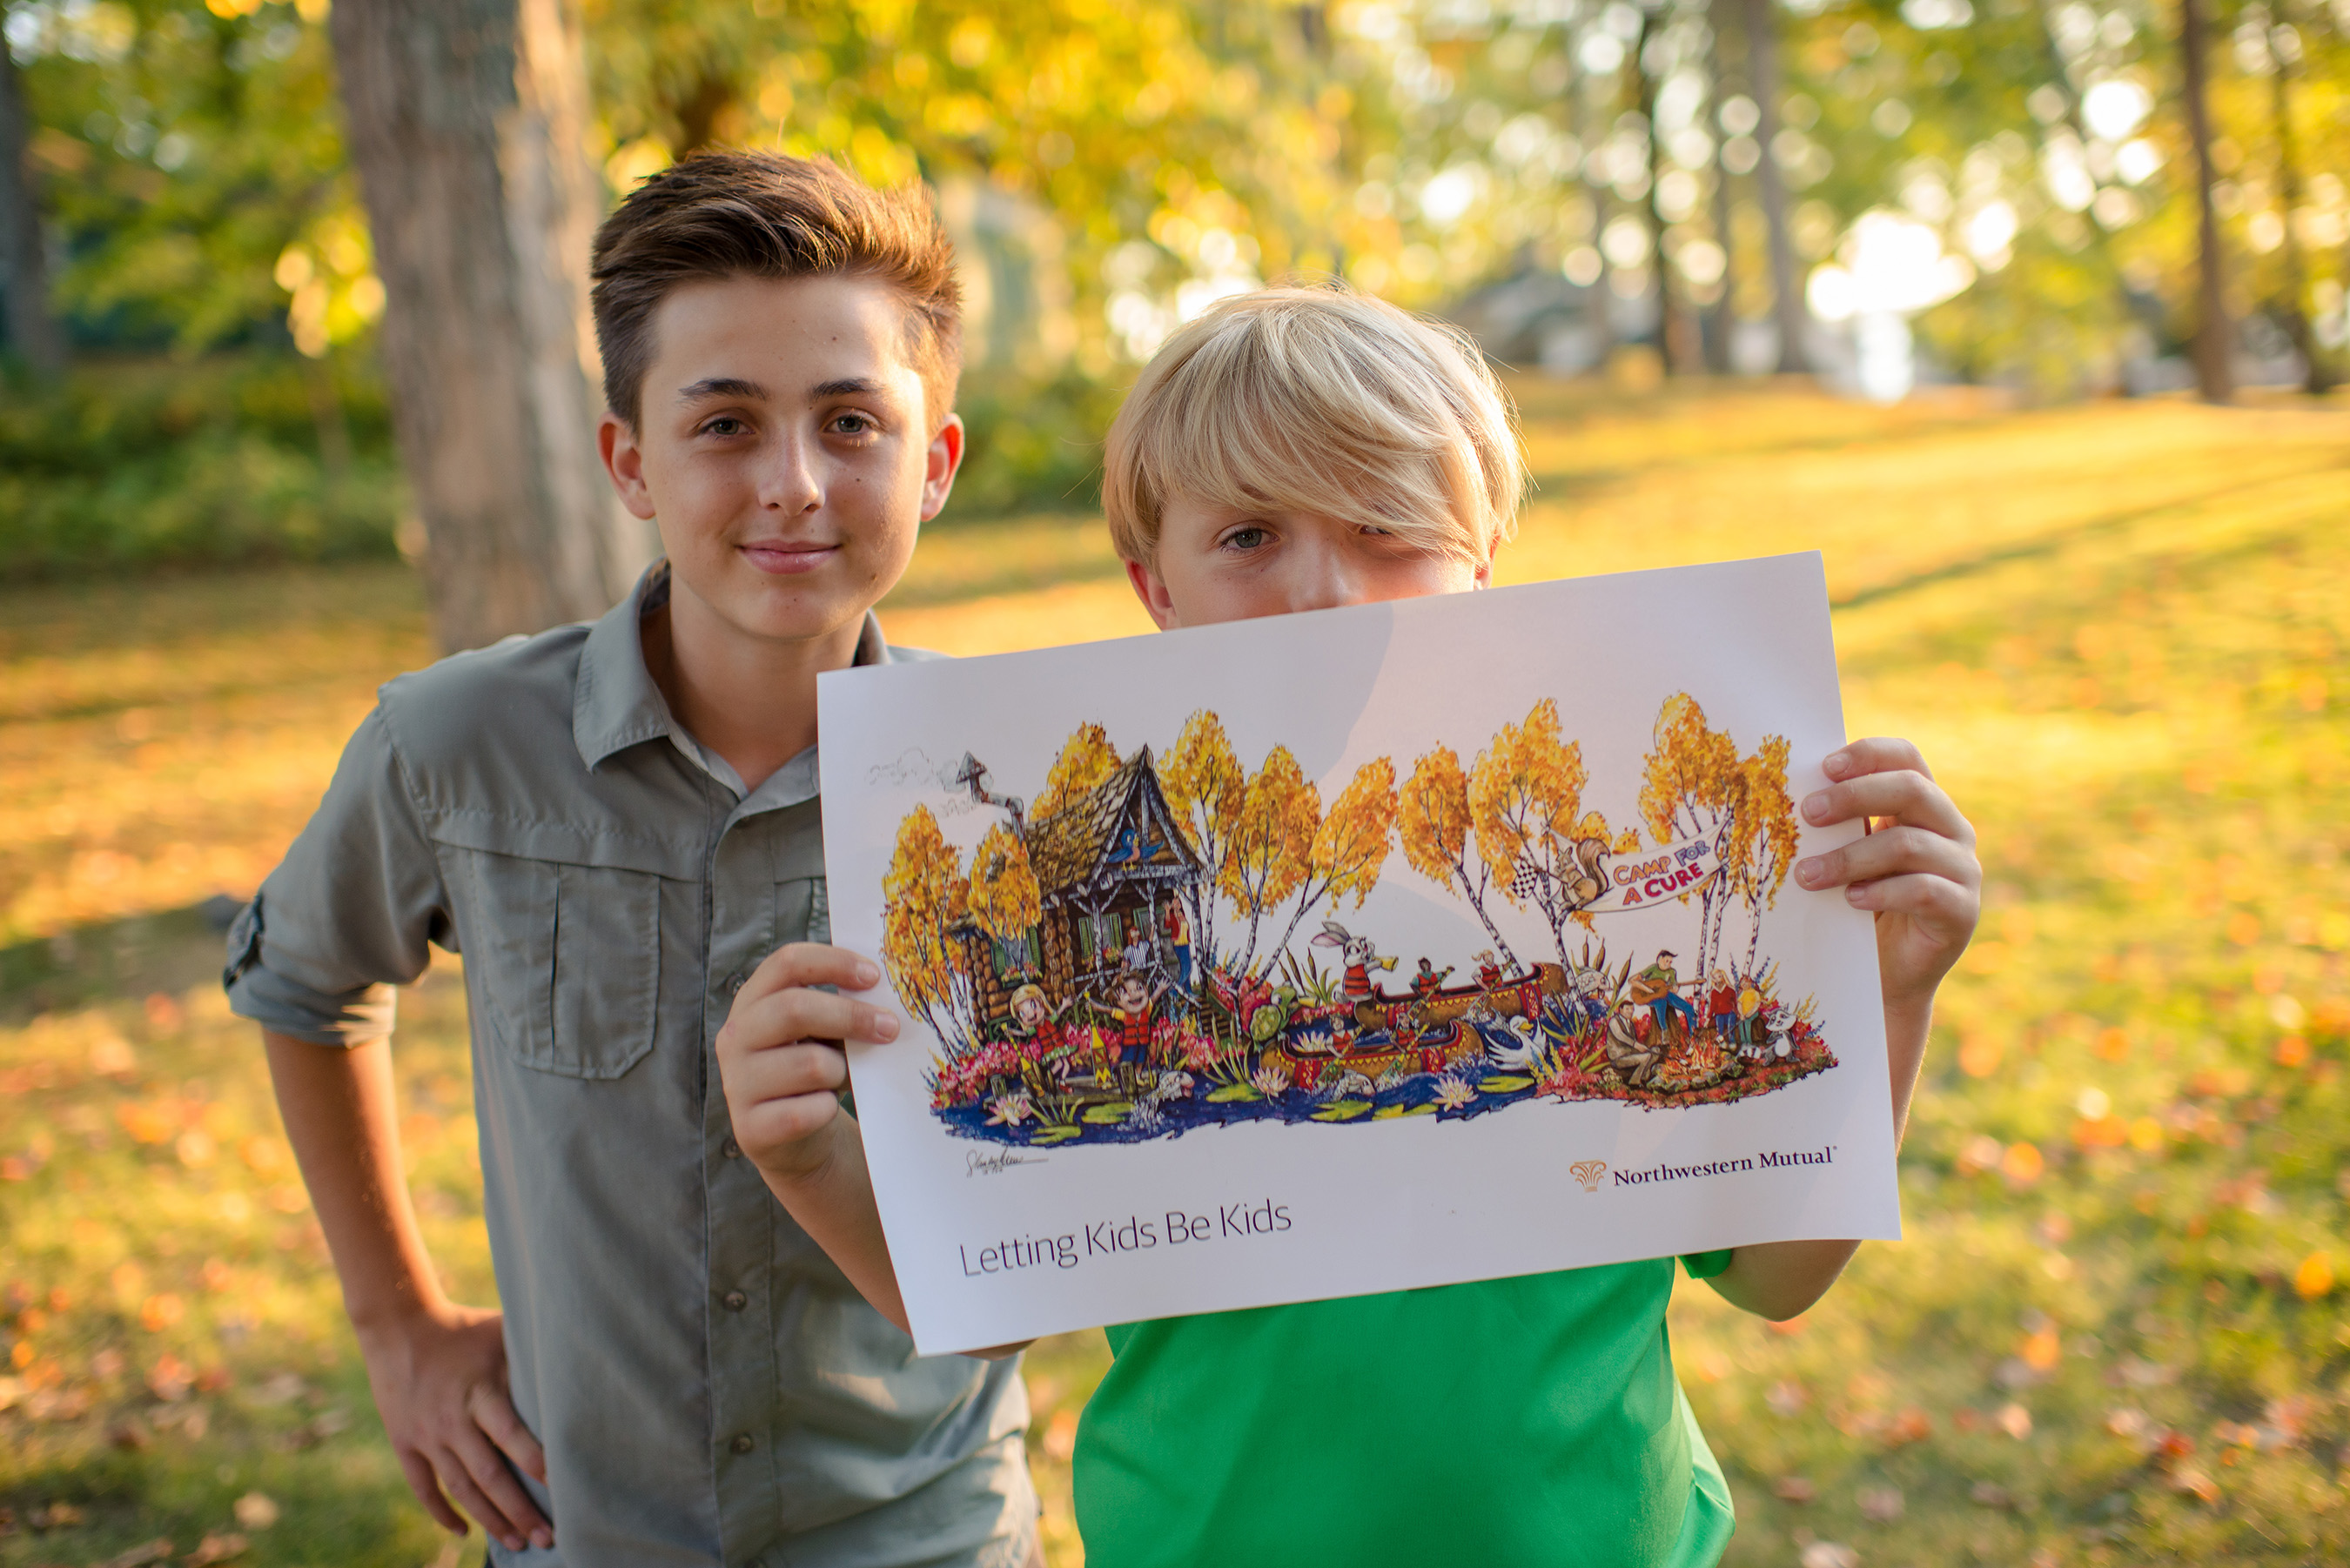 Camp has been an important part of 13-year-old Bennett Unger's cancer survivorship journey. Bennett and brother Boden will ride on Northwestern Mutual's 2018 Rose Parade® float.